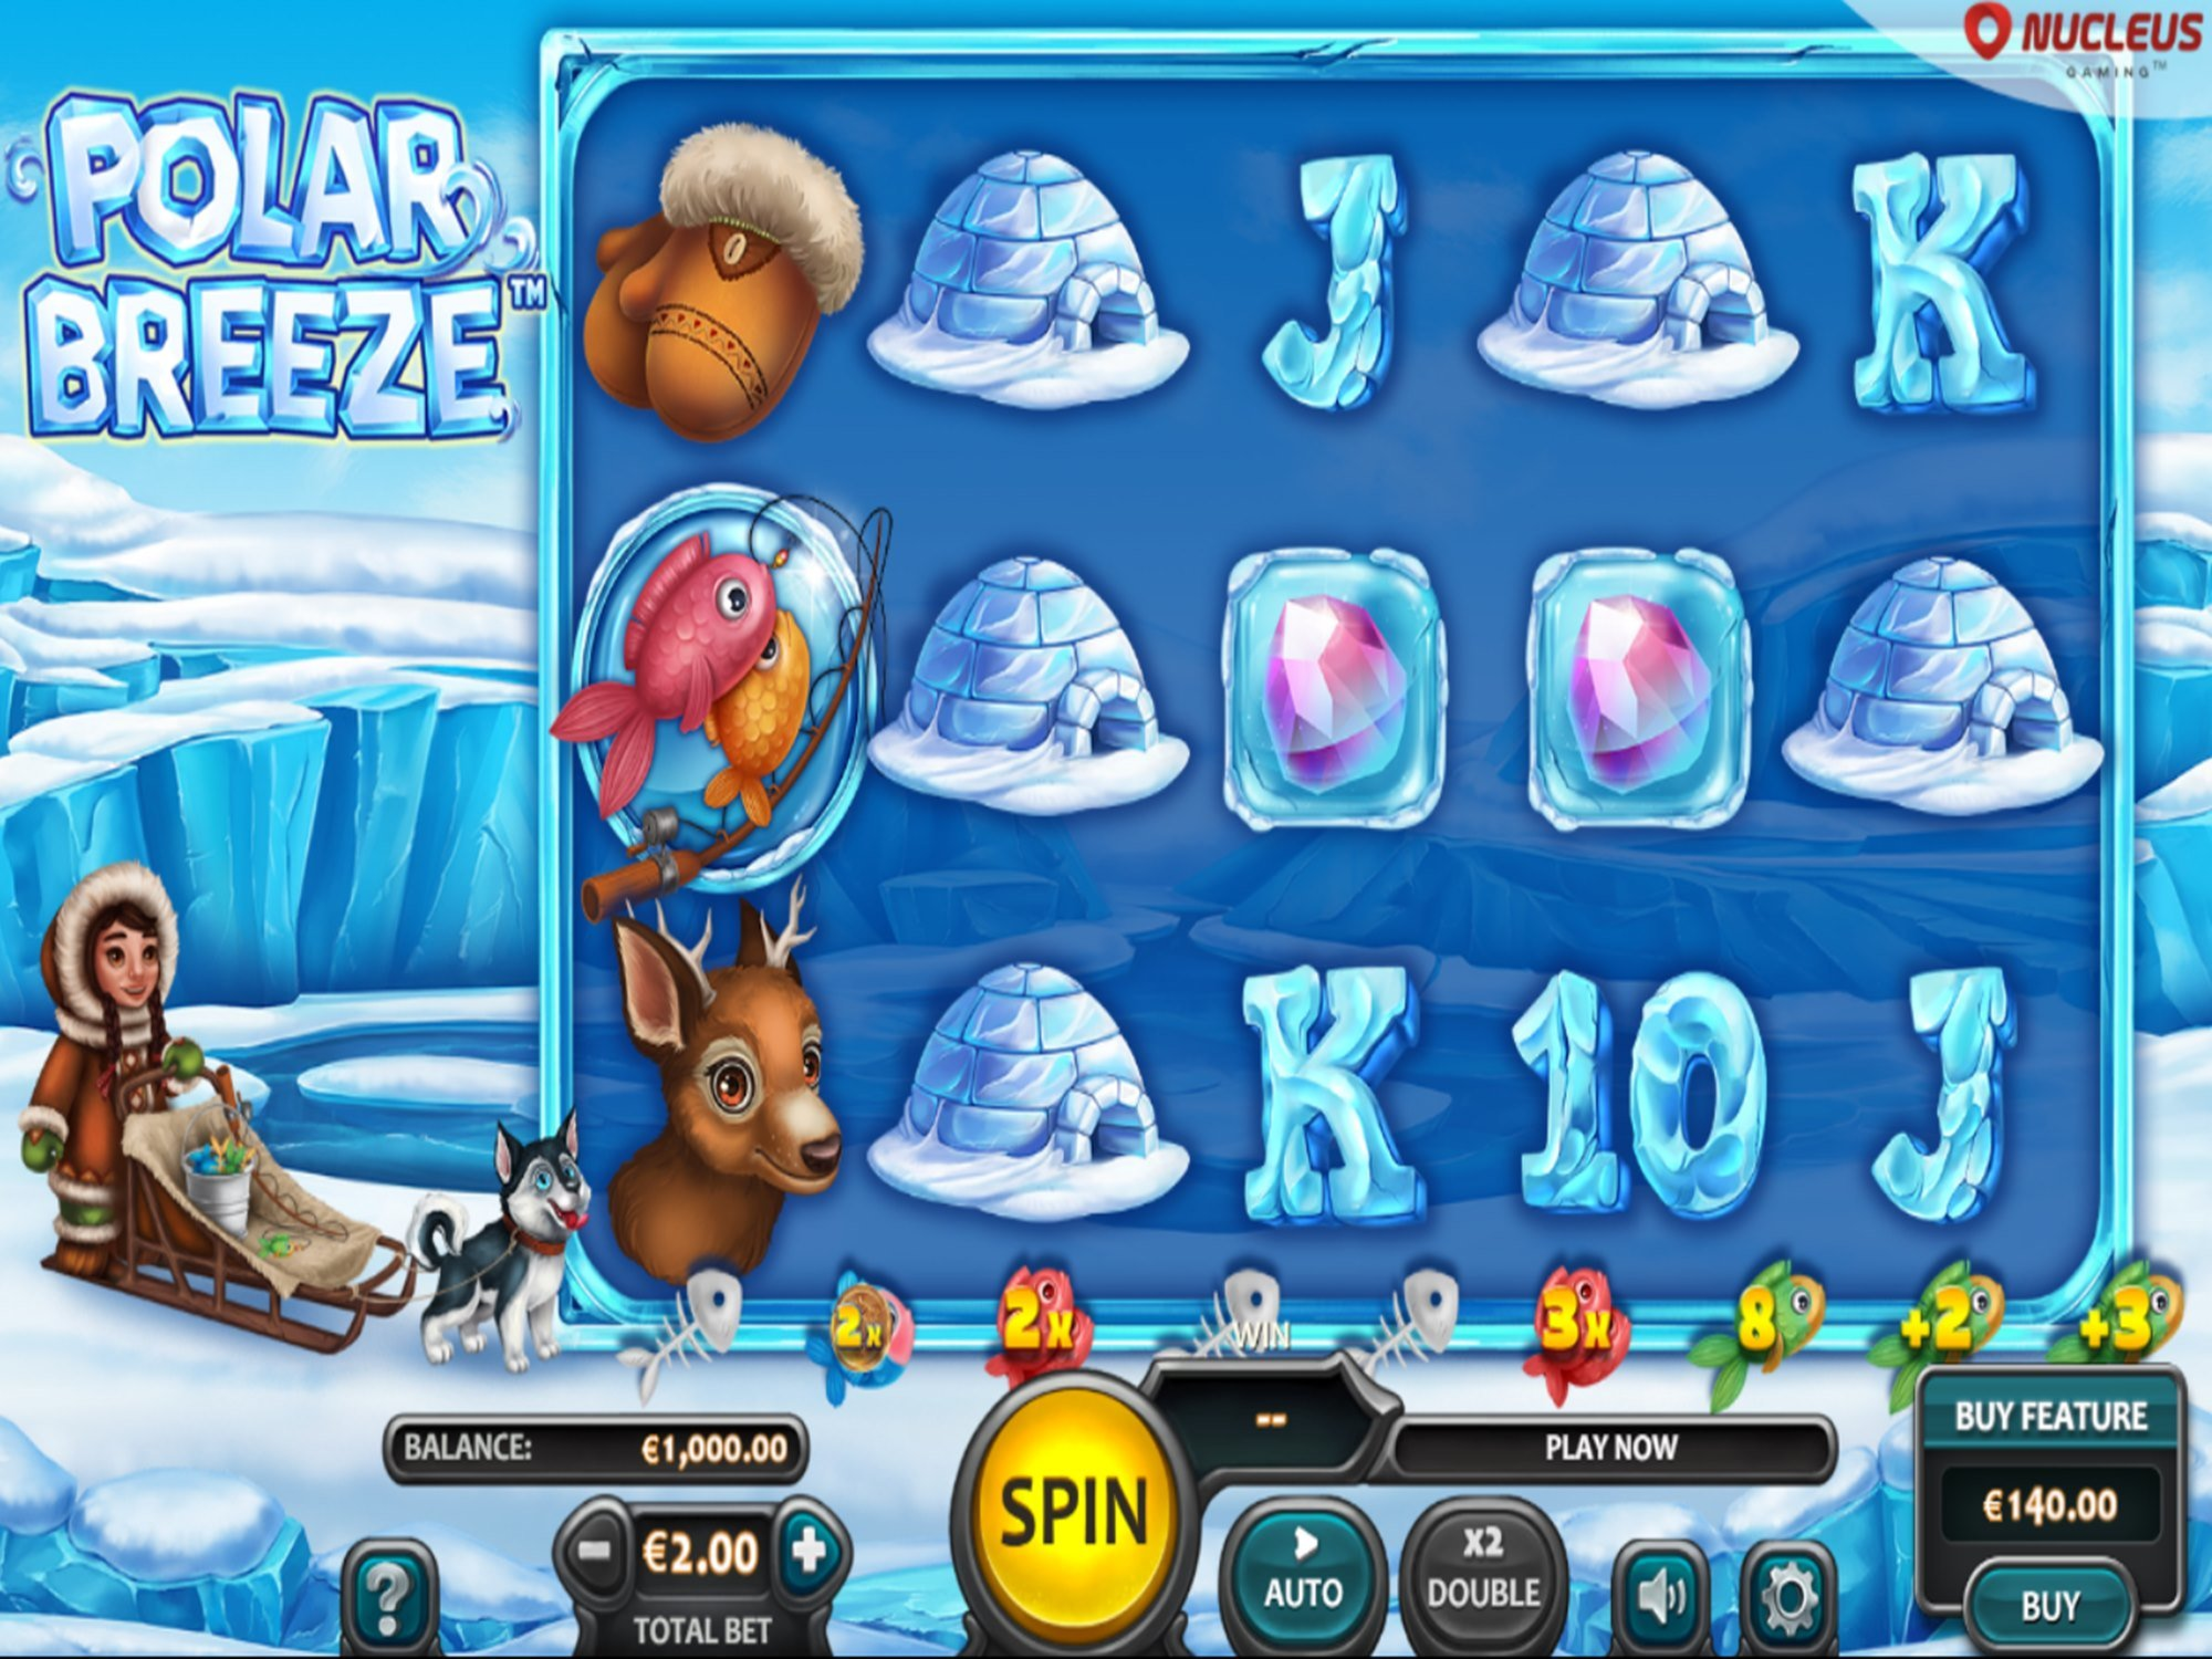 The Polar Breeze Online Slot Demo Game by Nucleus Gaming